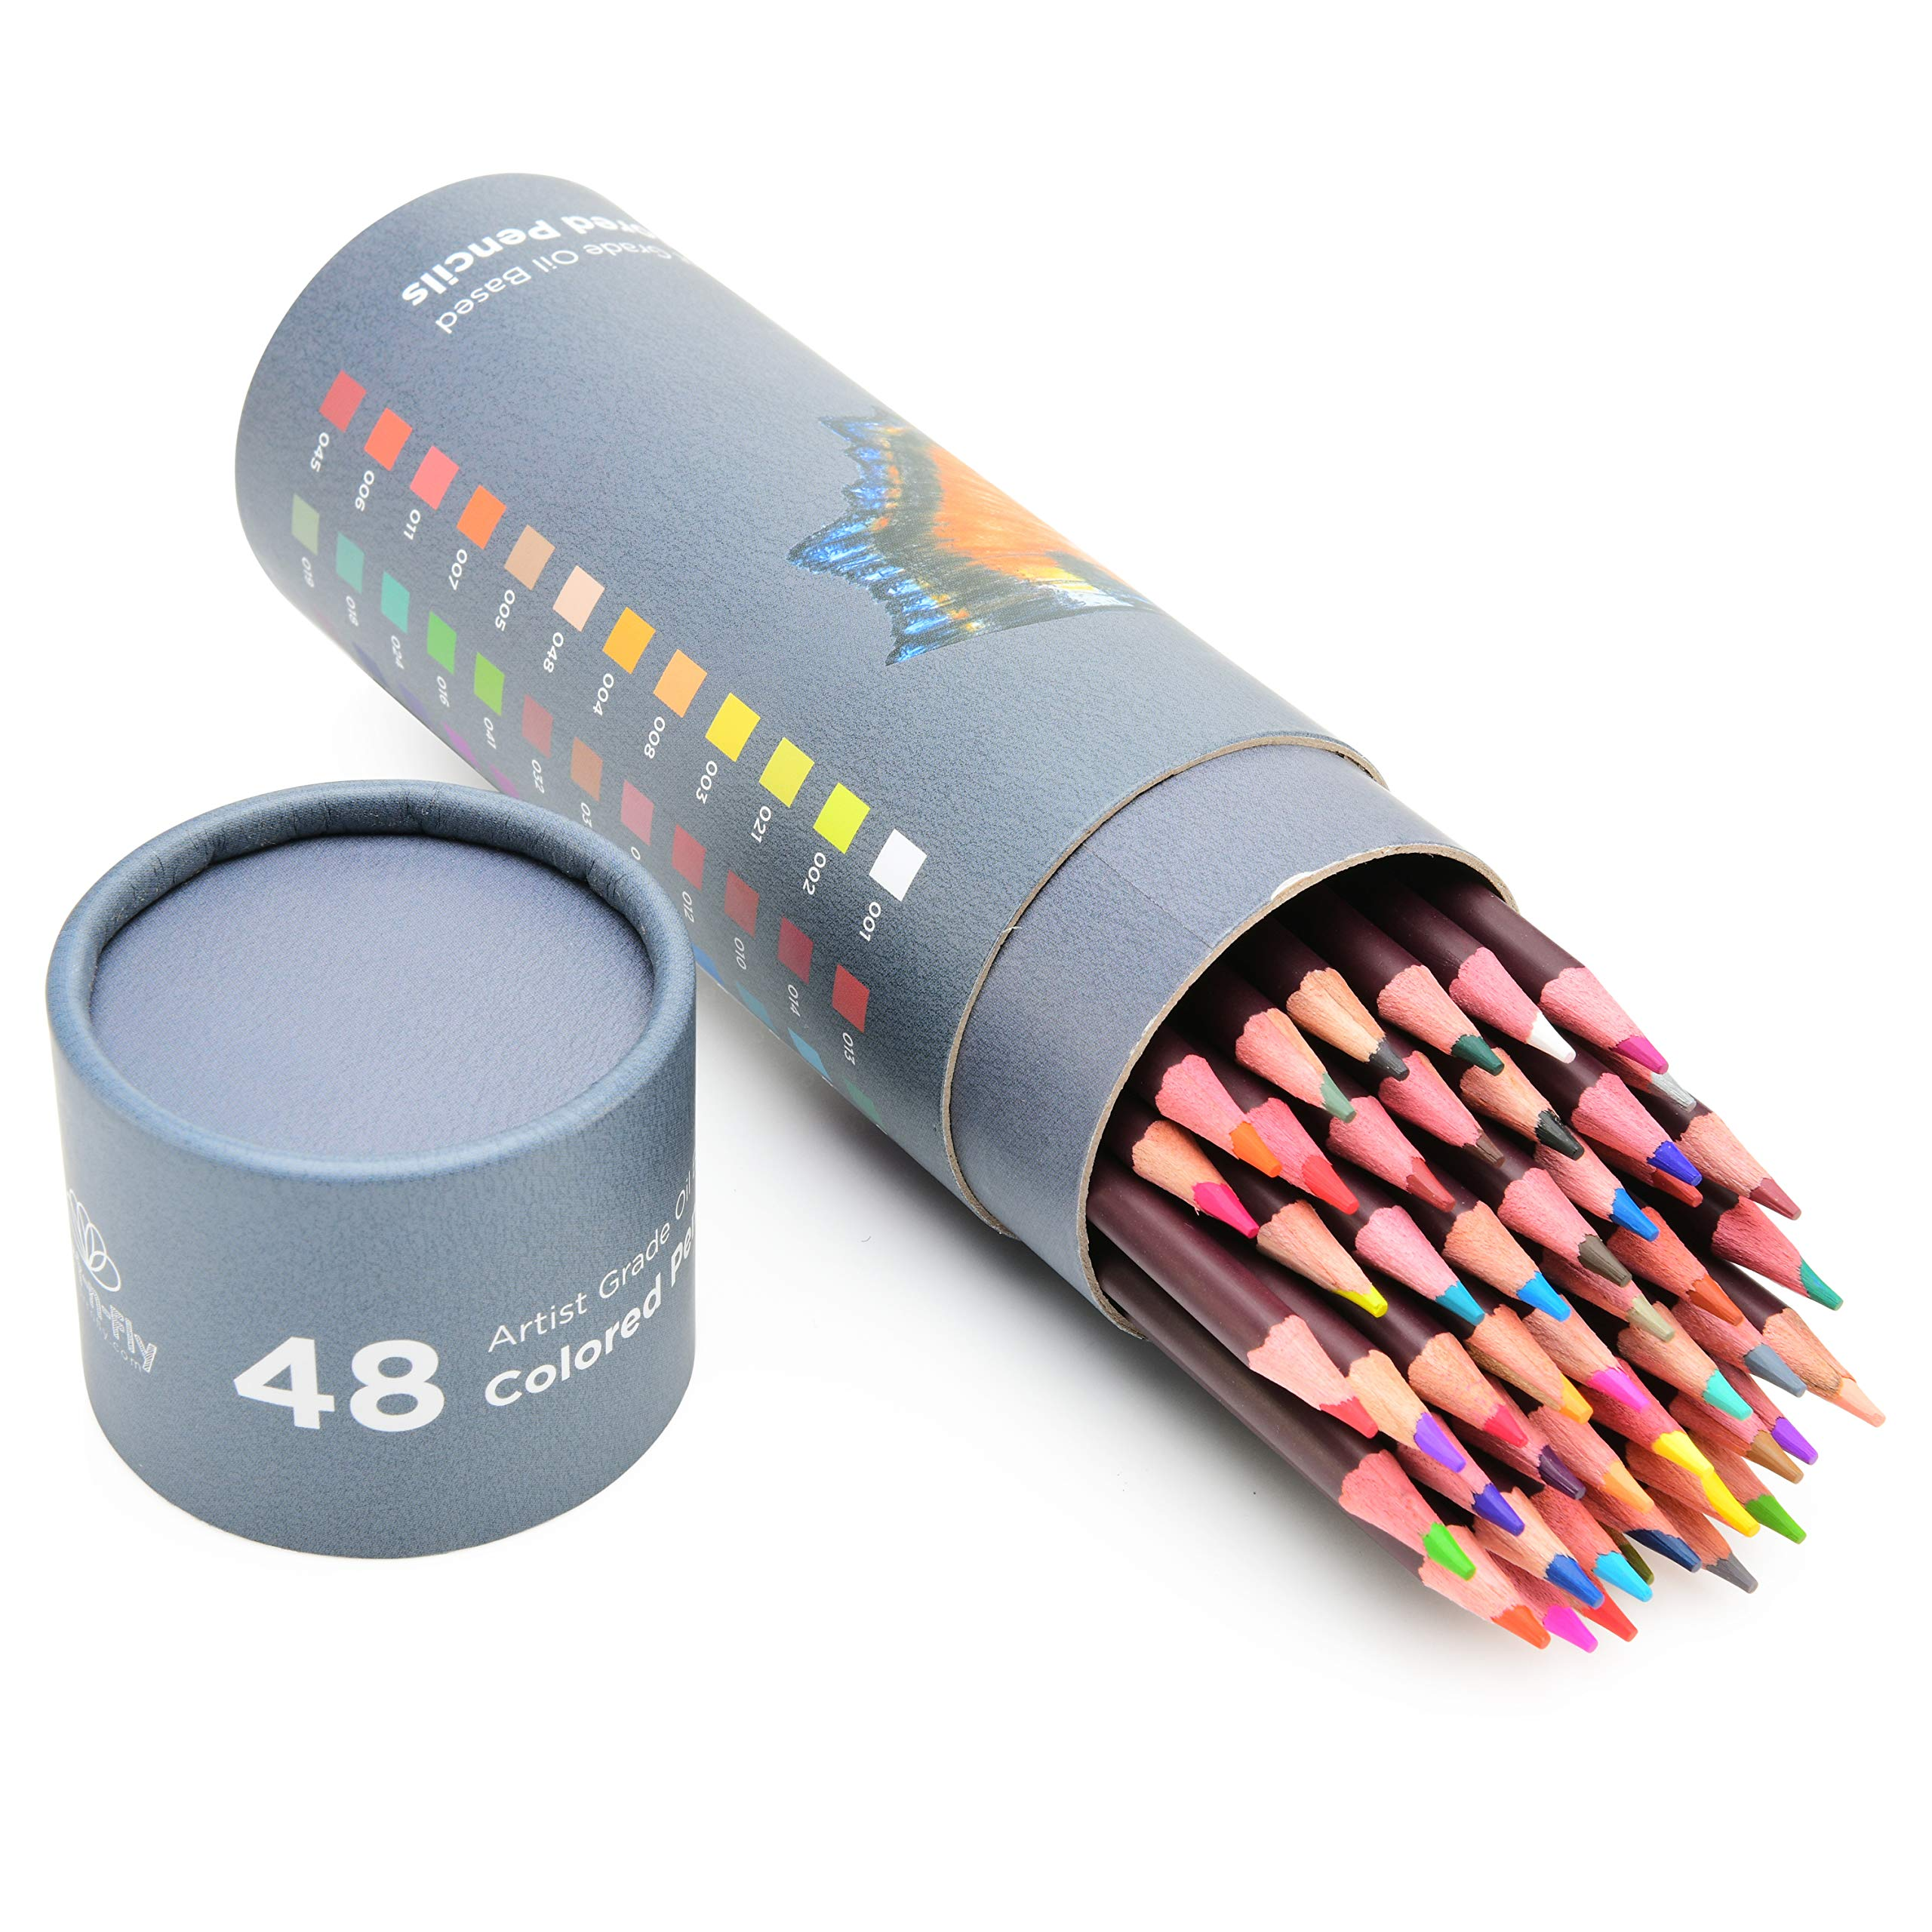 48 Professional Oil Based Colored Pencils For Artist Including Skin Tone Color Pencils For Coloring Drawing And Sketching by Art-n-Fly